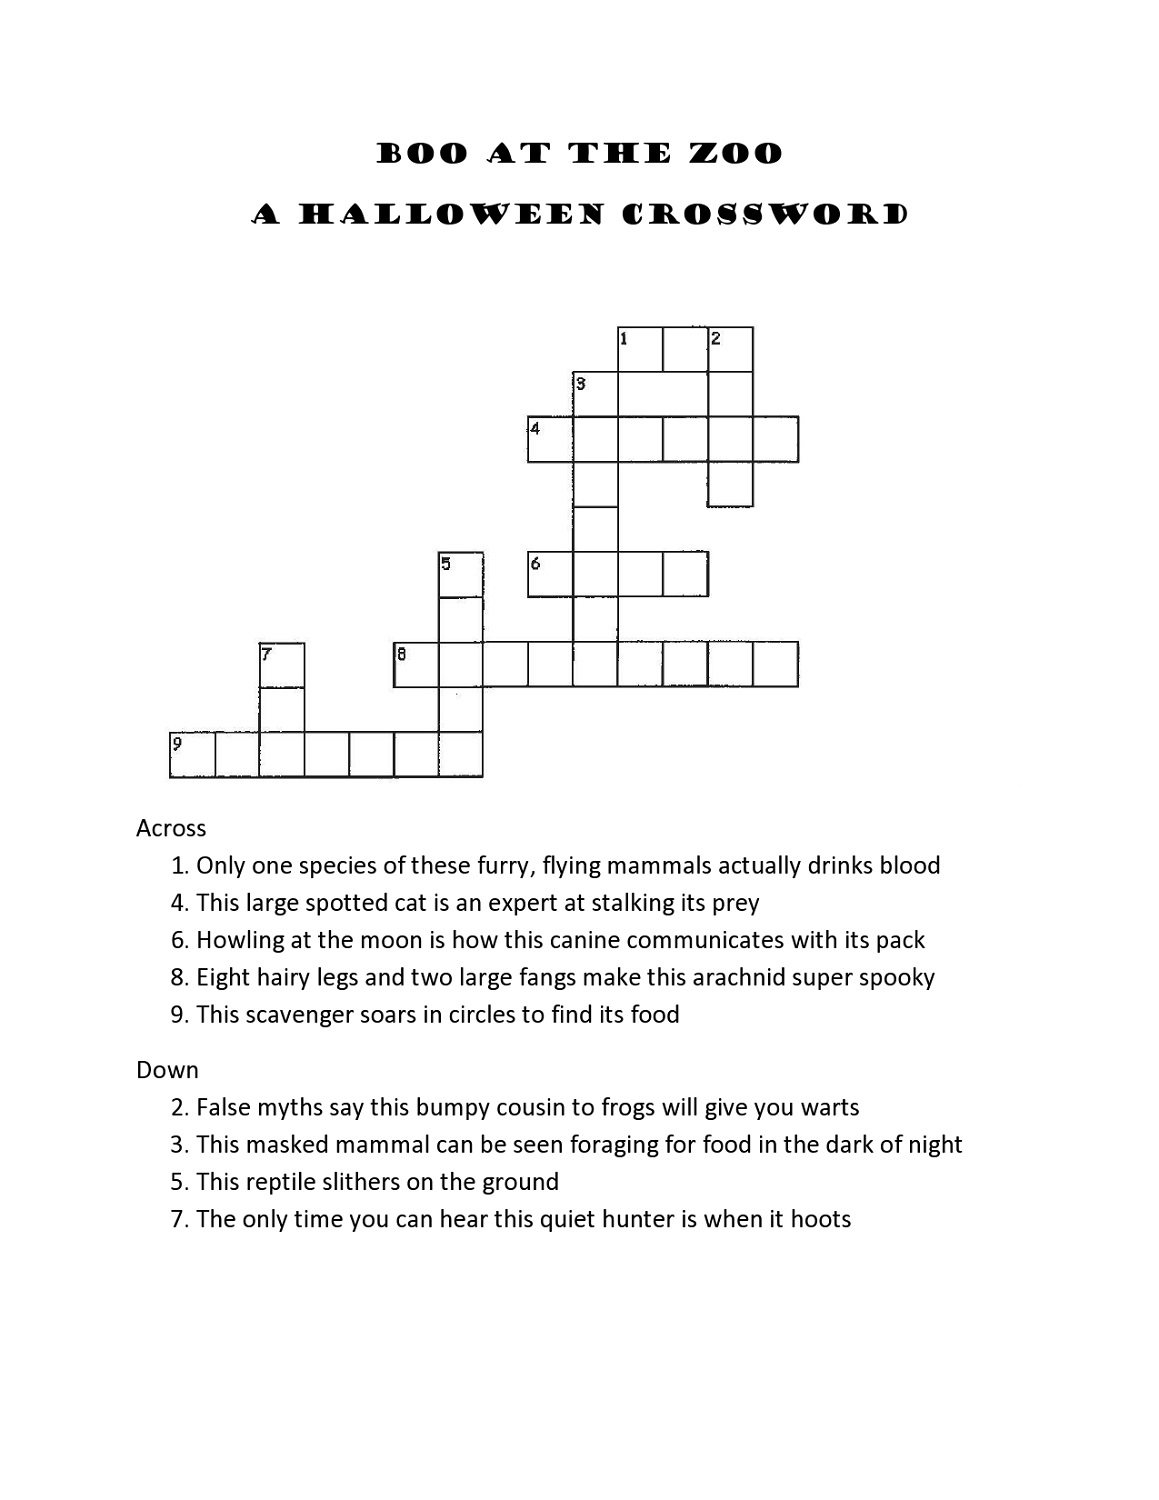 Crossword Puzzles For 5Th Graders | Activity Shelter - Printable Crossword Puzzles For Grade 7